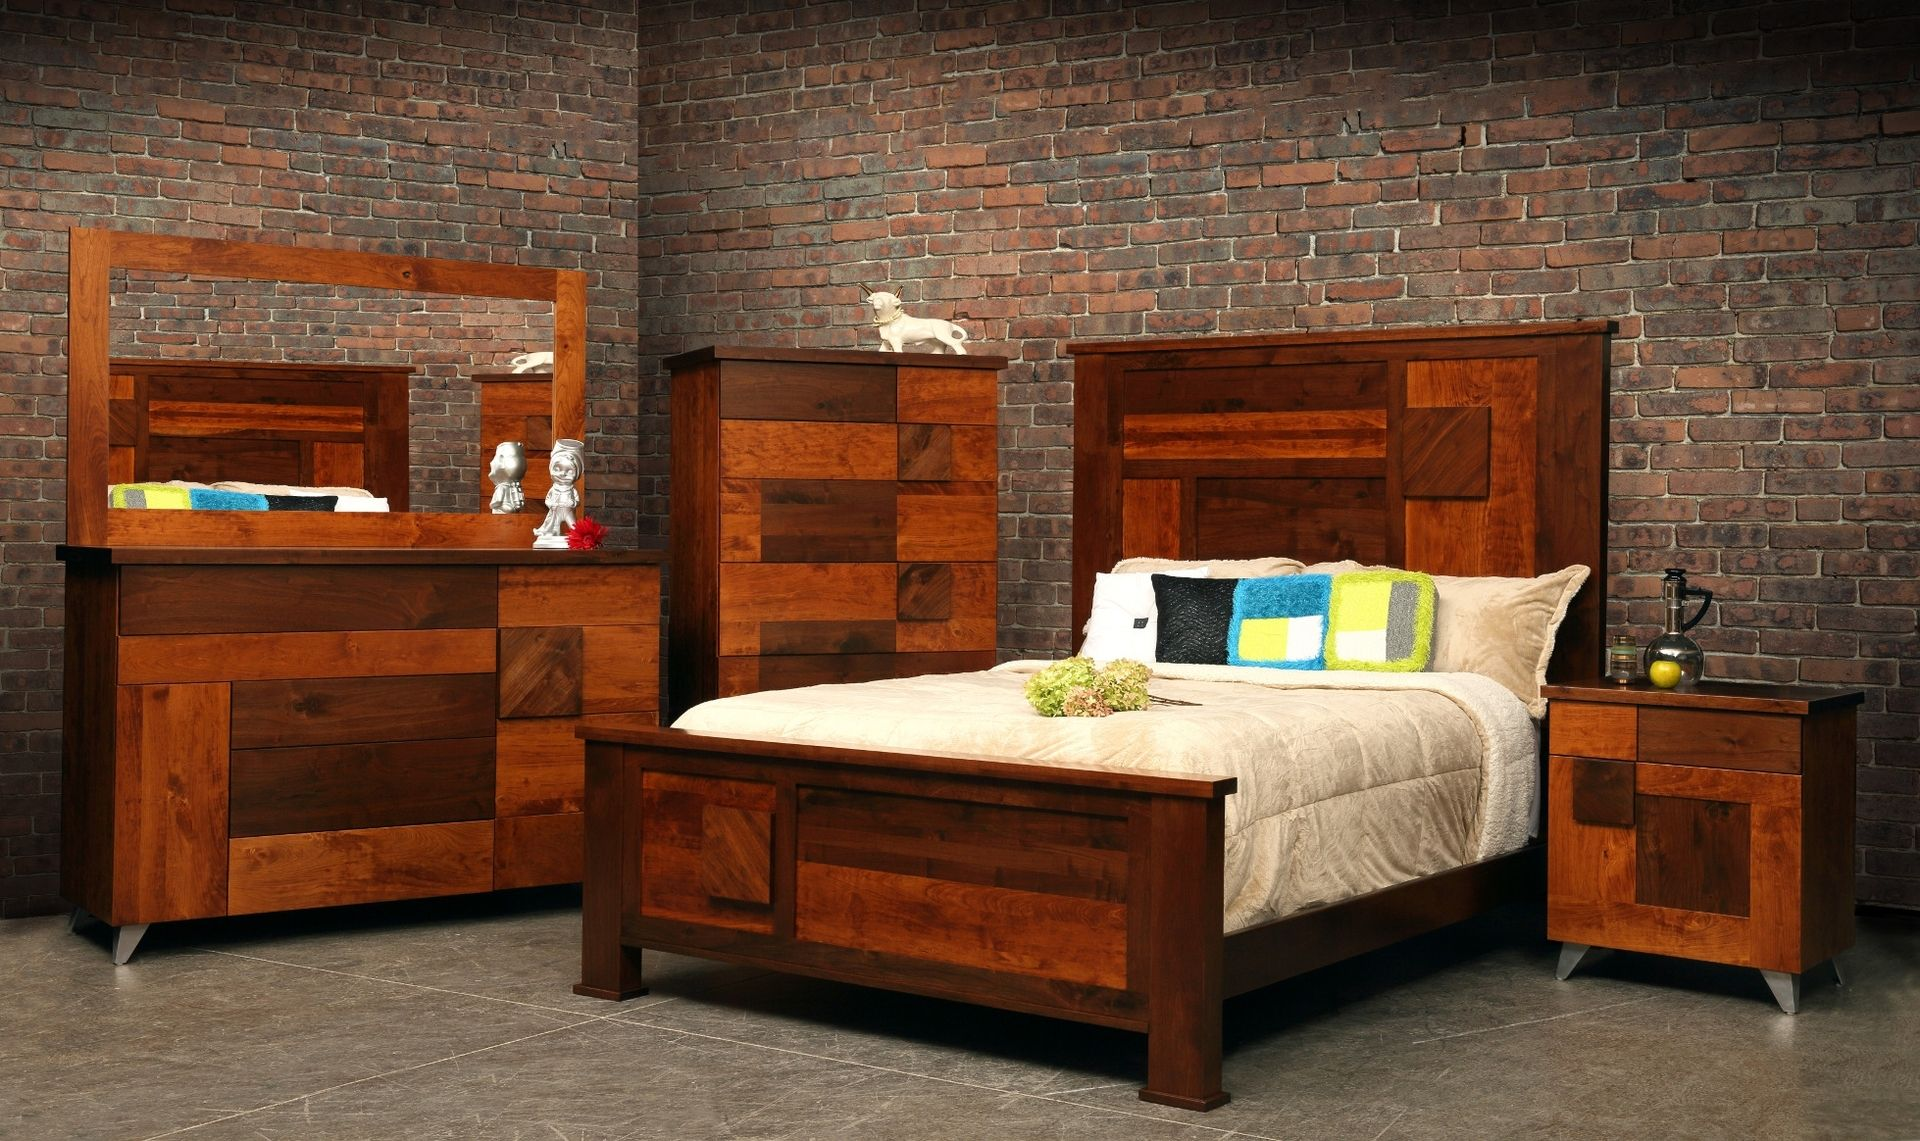 Custom Bedroom Sets   CustomMade com Arial Fields Modern Walnut   Cherry Bedroom Set   Bed  Nightstand  Dresser   Chest  Mirror. Custom Bedroom Furniture. Home Design Ideas